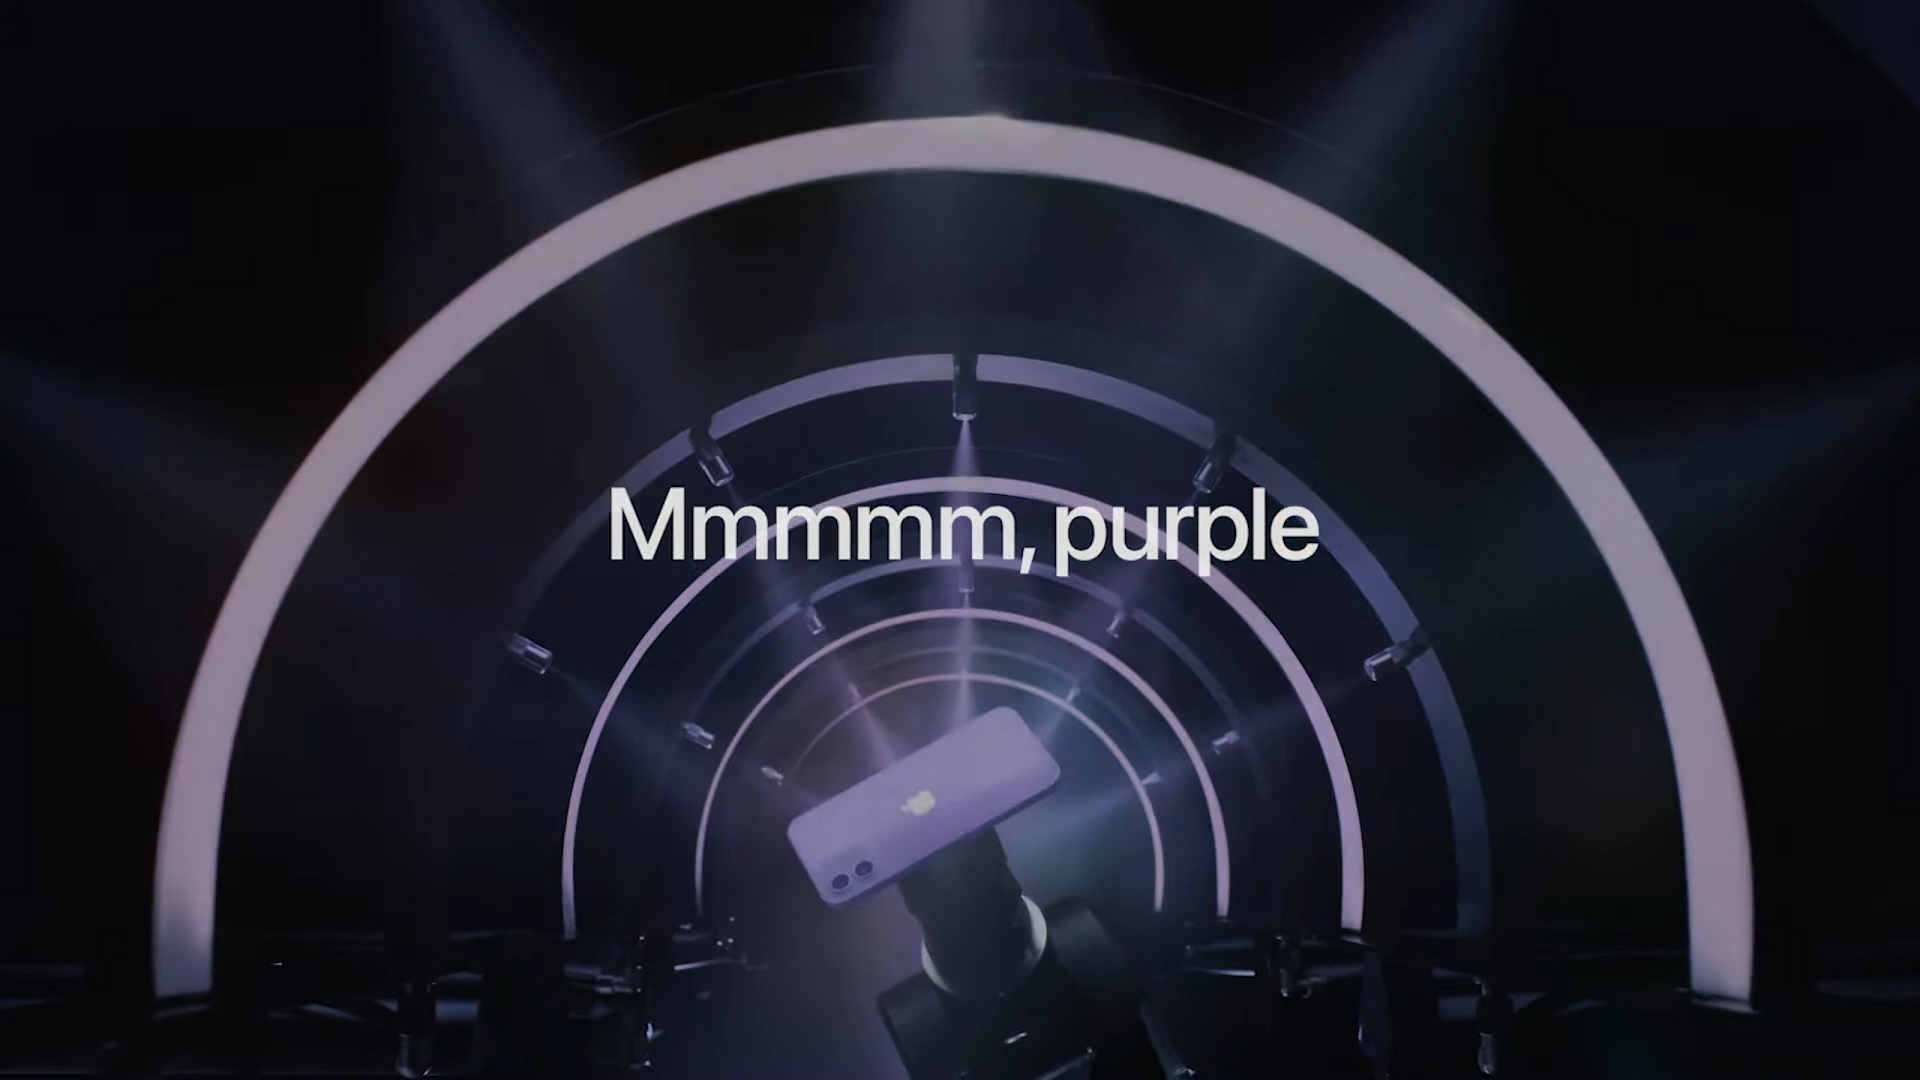 Apple innovated earlier this year with the introduction of a purple iPhone!